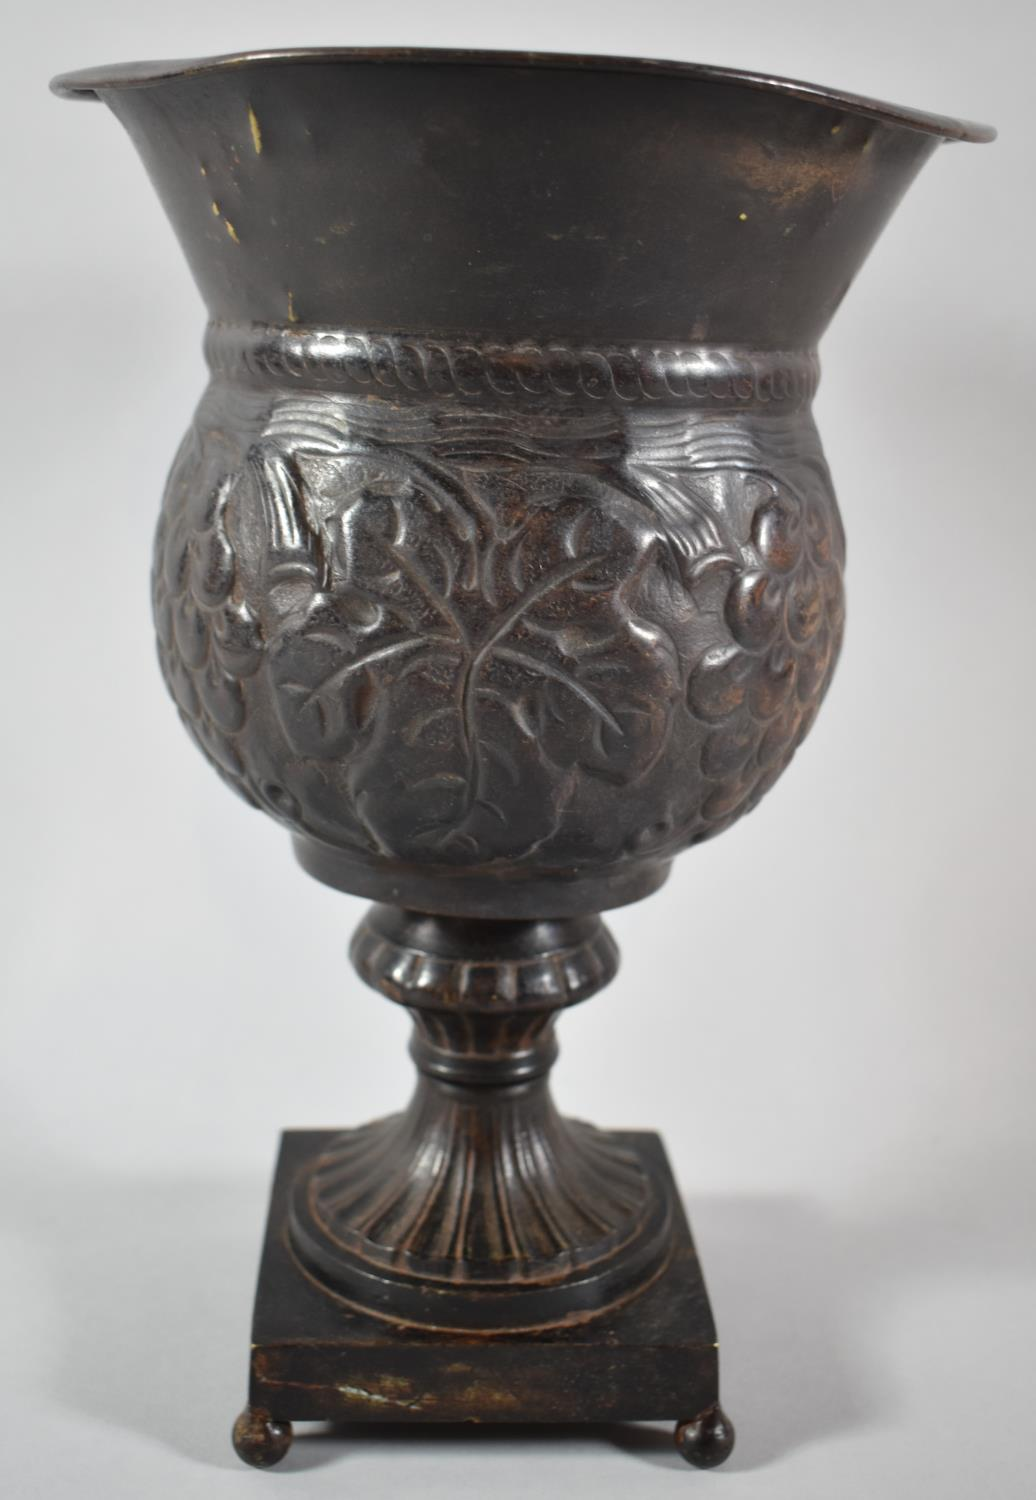 A Modern Bronze Effect Metal Vase on Square Base with Four Ball Feet, 28cm high